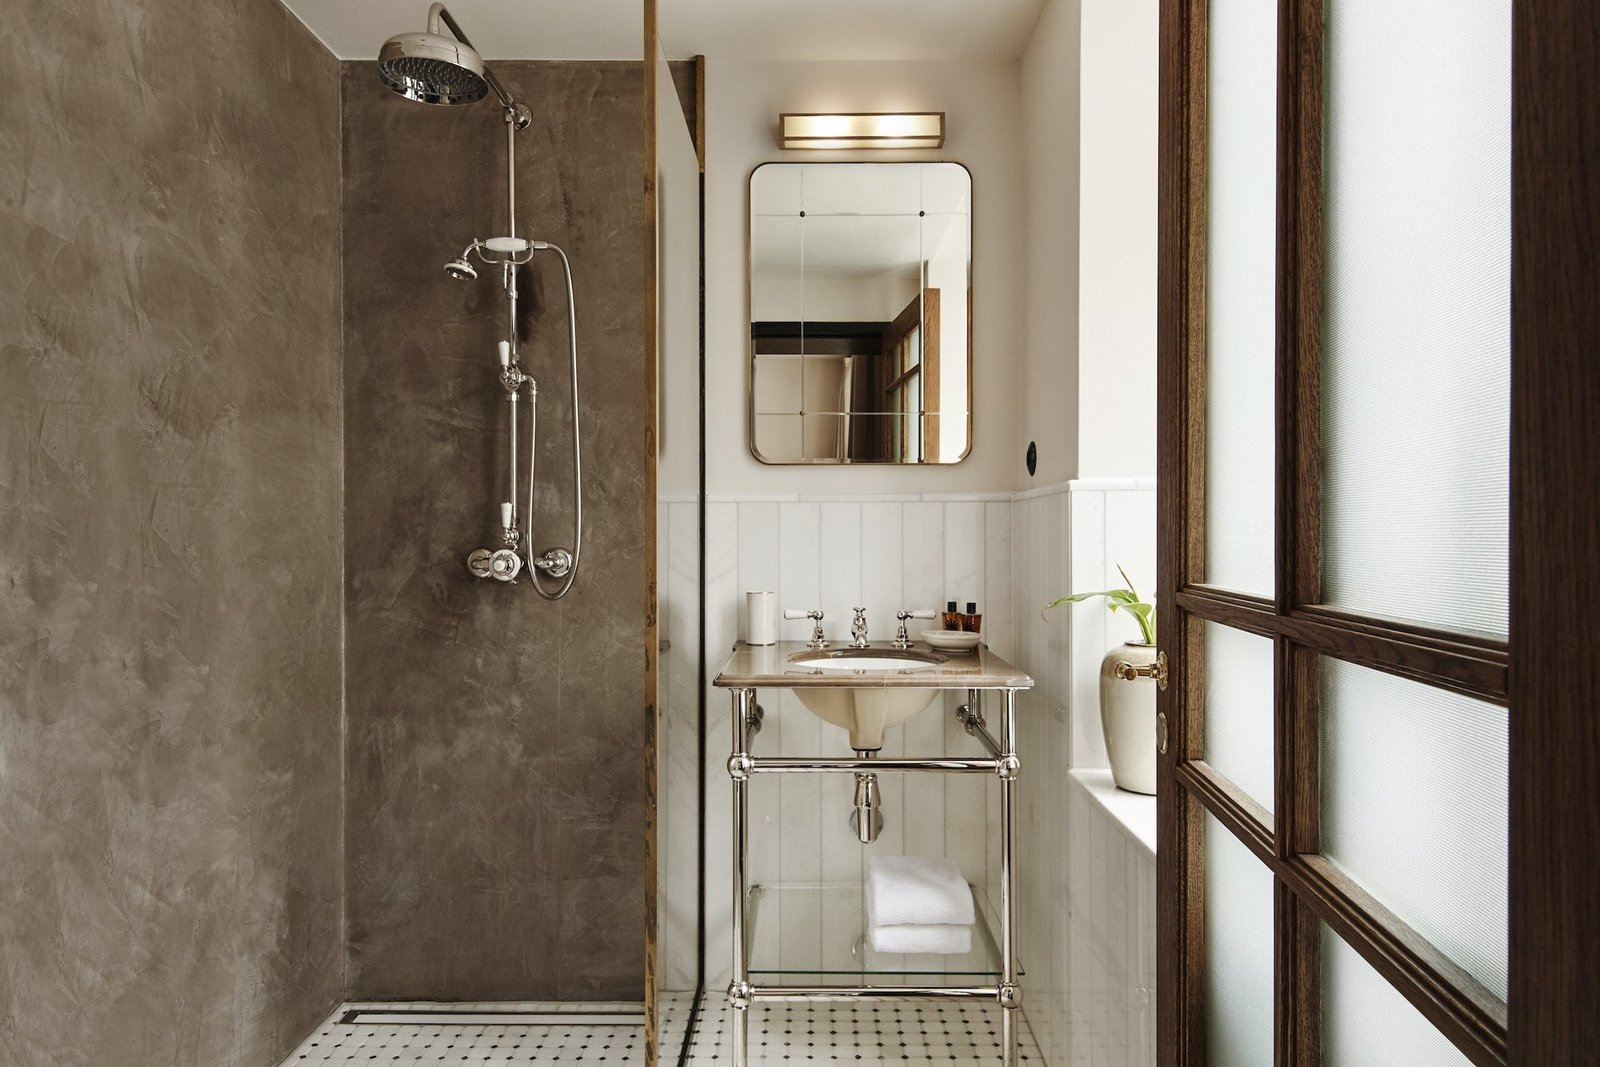 Bath Room, Undermount Sink, Pedestal Sink, Open Shower, and Wall Lighting  Hotel Sanders